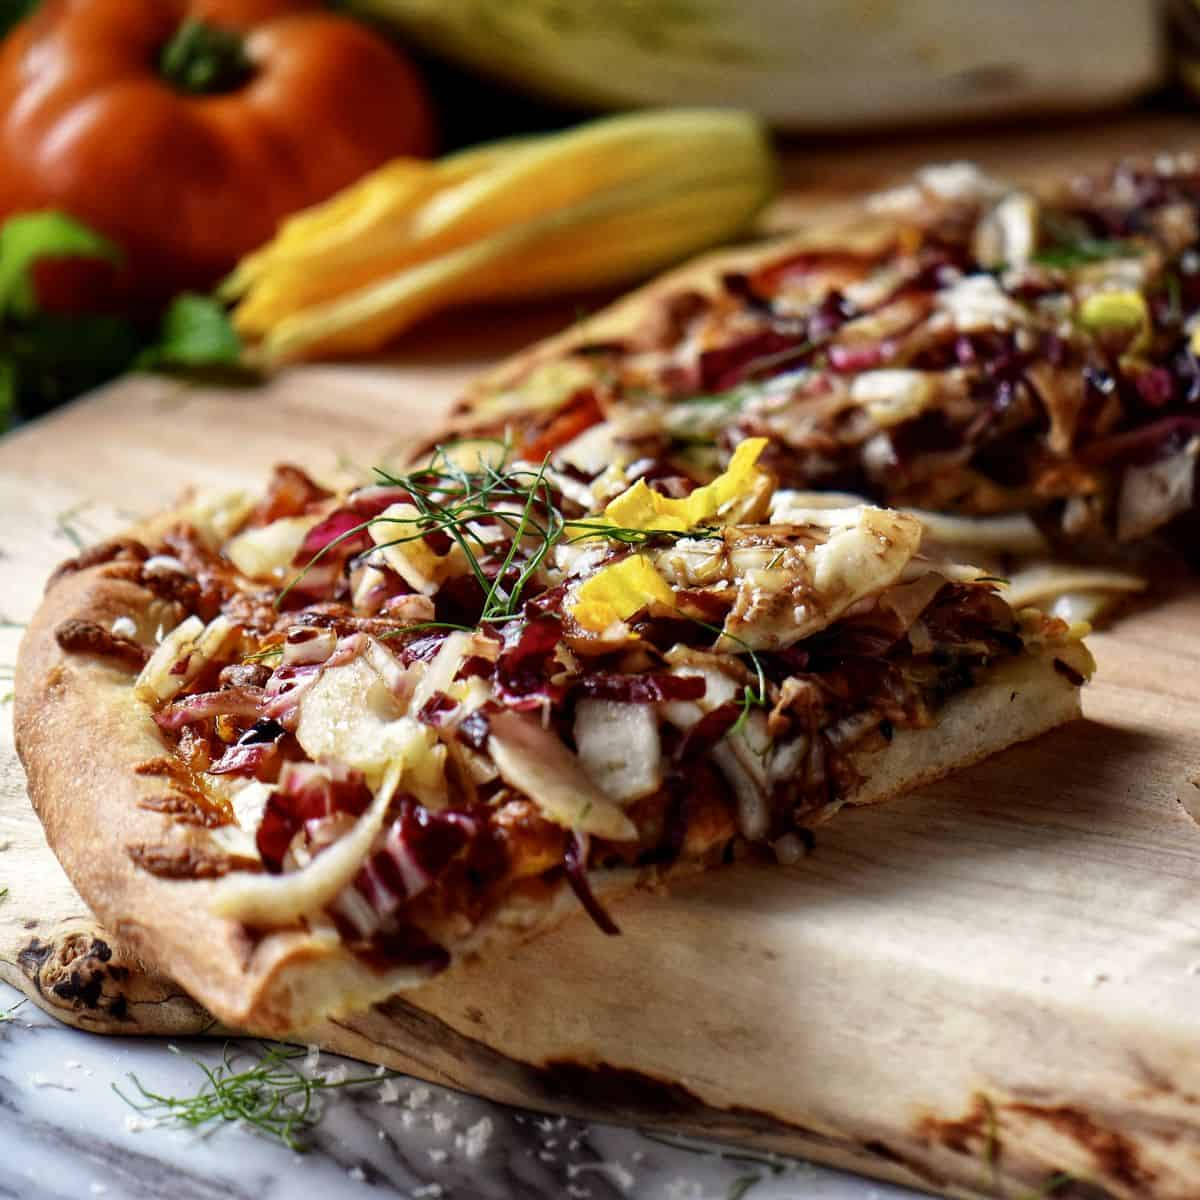 A piece of pizza topped with endive, radicchio and fennel, on a wooden board.